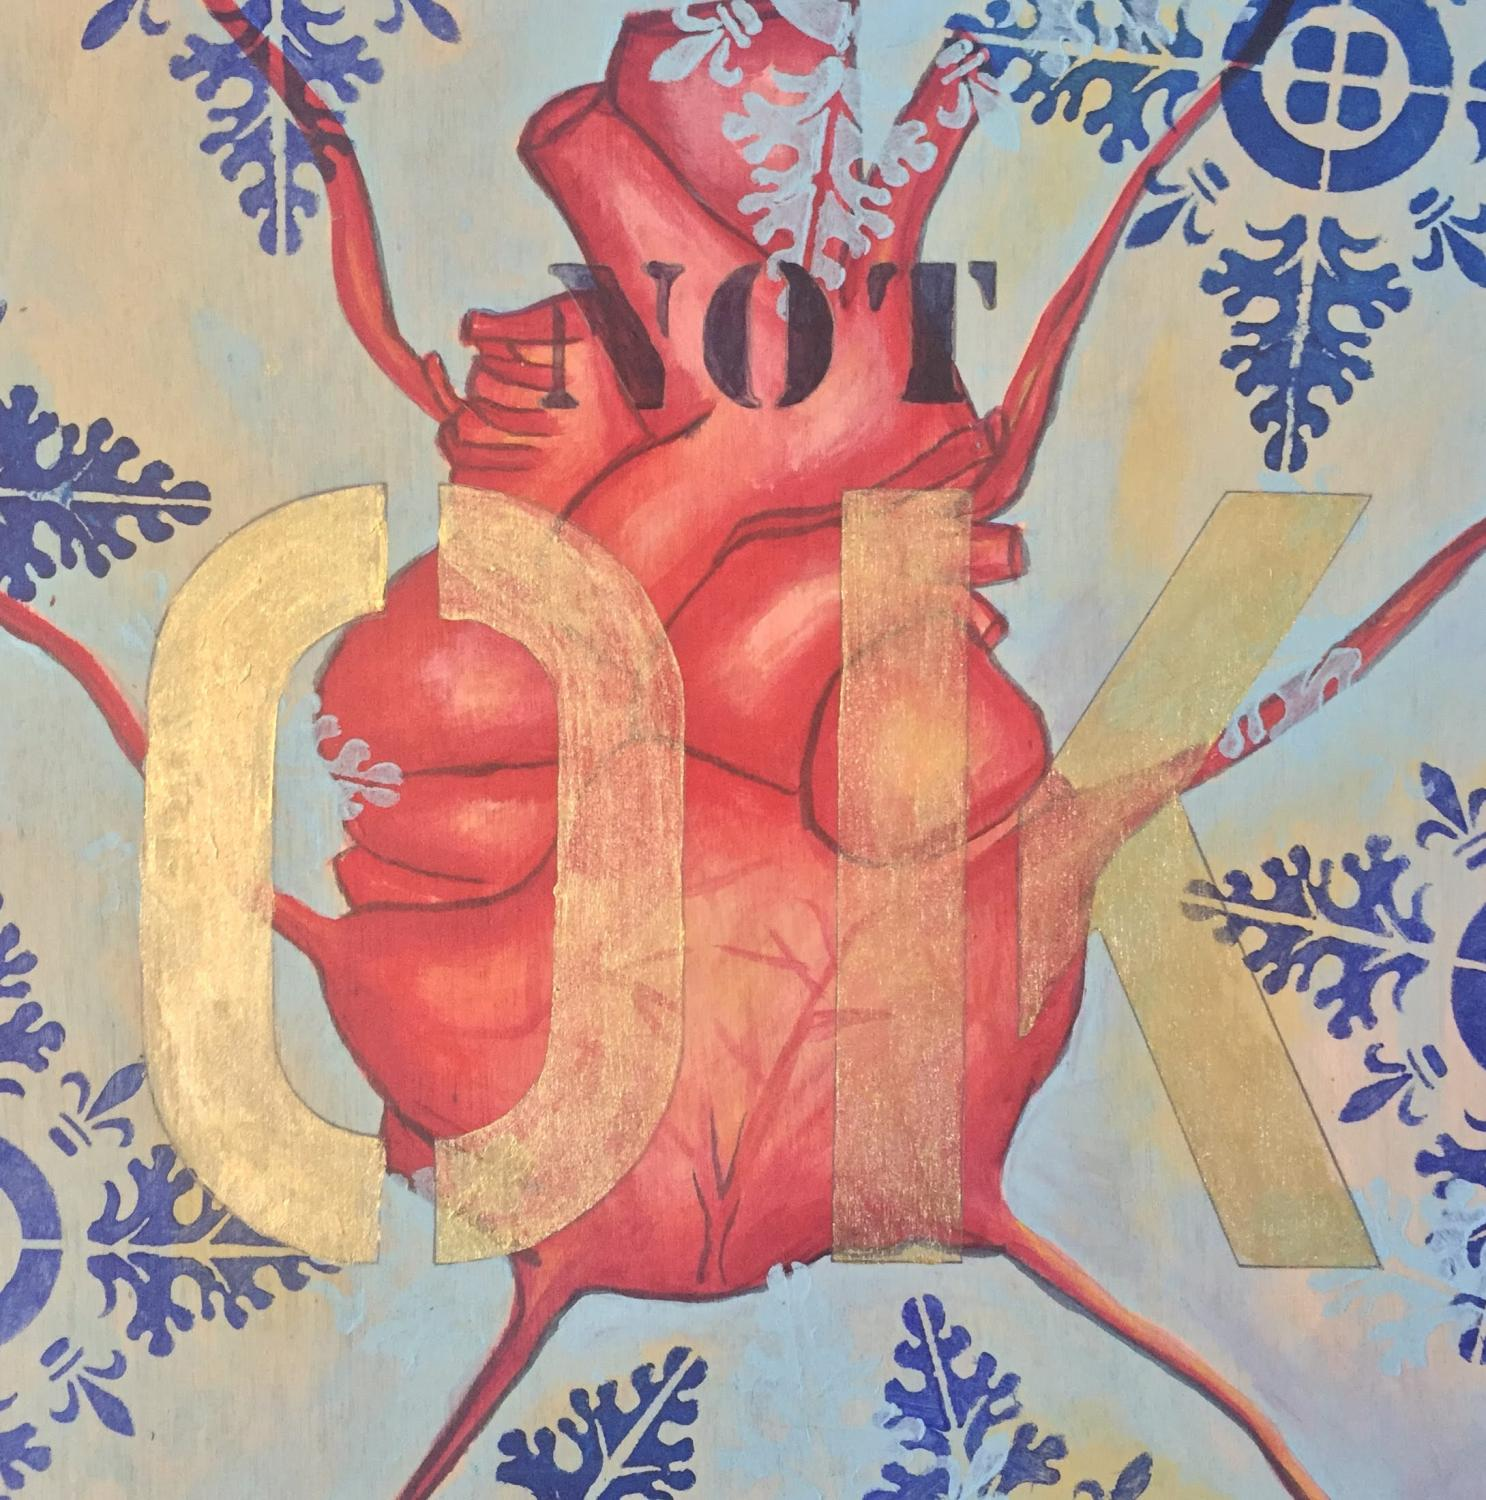 Painting with decorative dark blue stenciled designs over a pale blue background. In the center of the painting is a large, red, human heart, with arteries stretching to the edges, like tendrils. OK is stenciled large in the center, NOT is small at top.